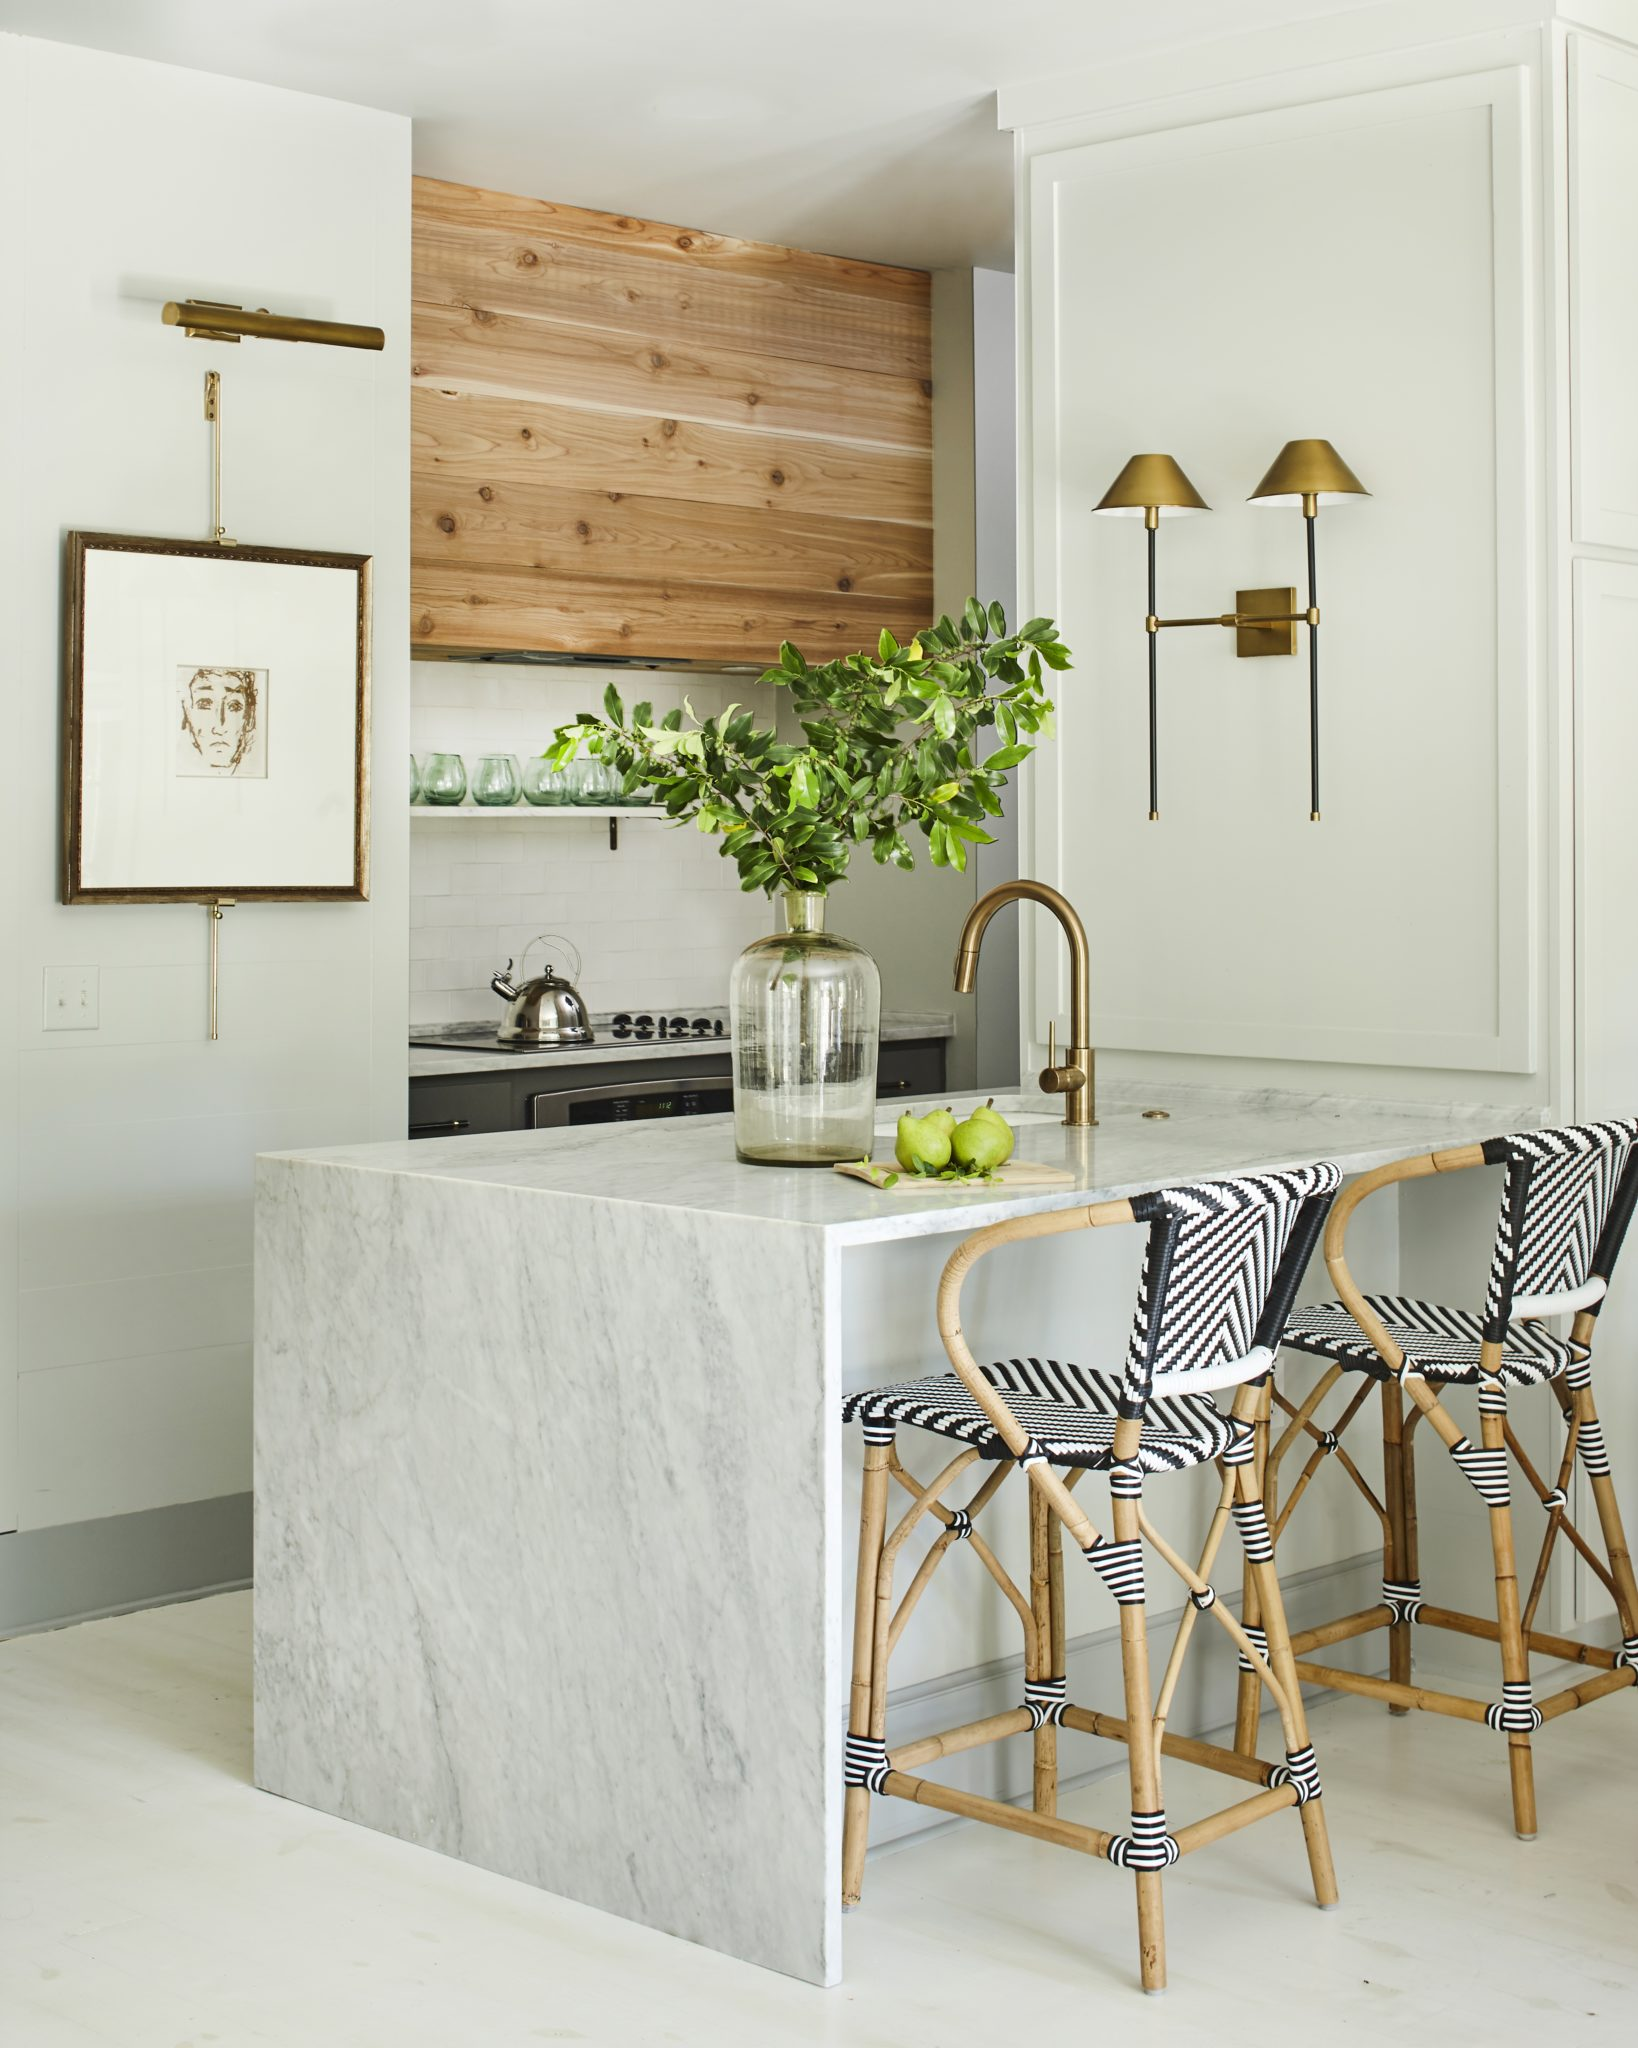 Marble waterfall countertop, wood shiplap hood and bistro counter stools by Ashley Gilbreath Interior Design